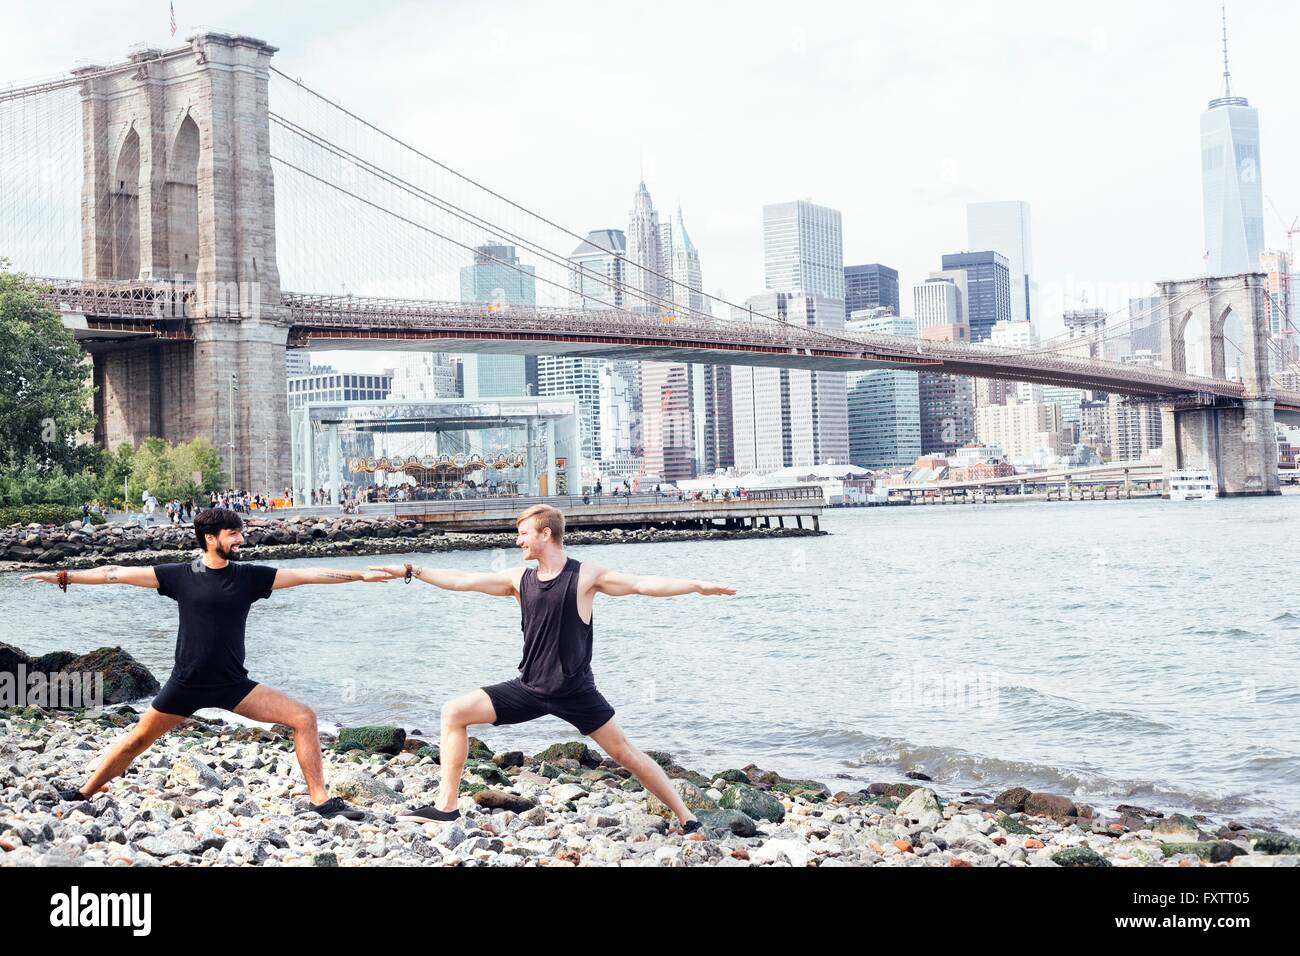 Two men practicing yoga on riverside in front of Brooklyn Bridge, New York, USA - Stock Image